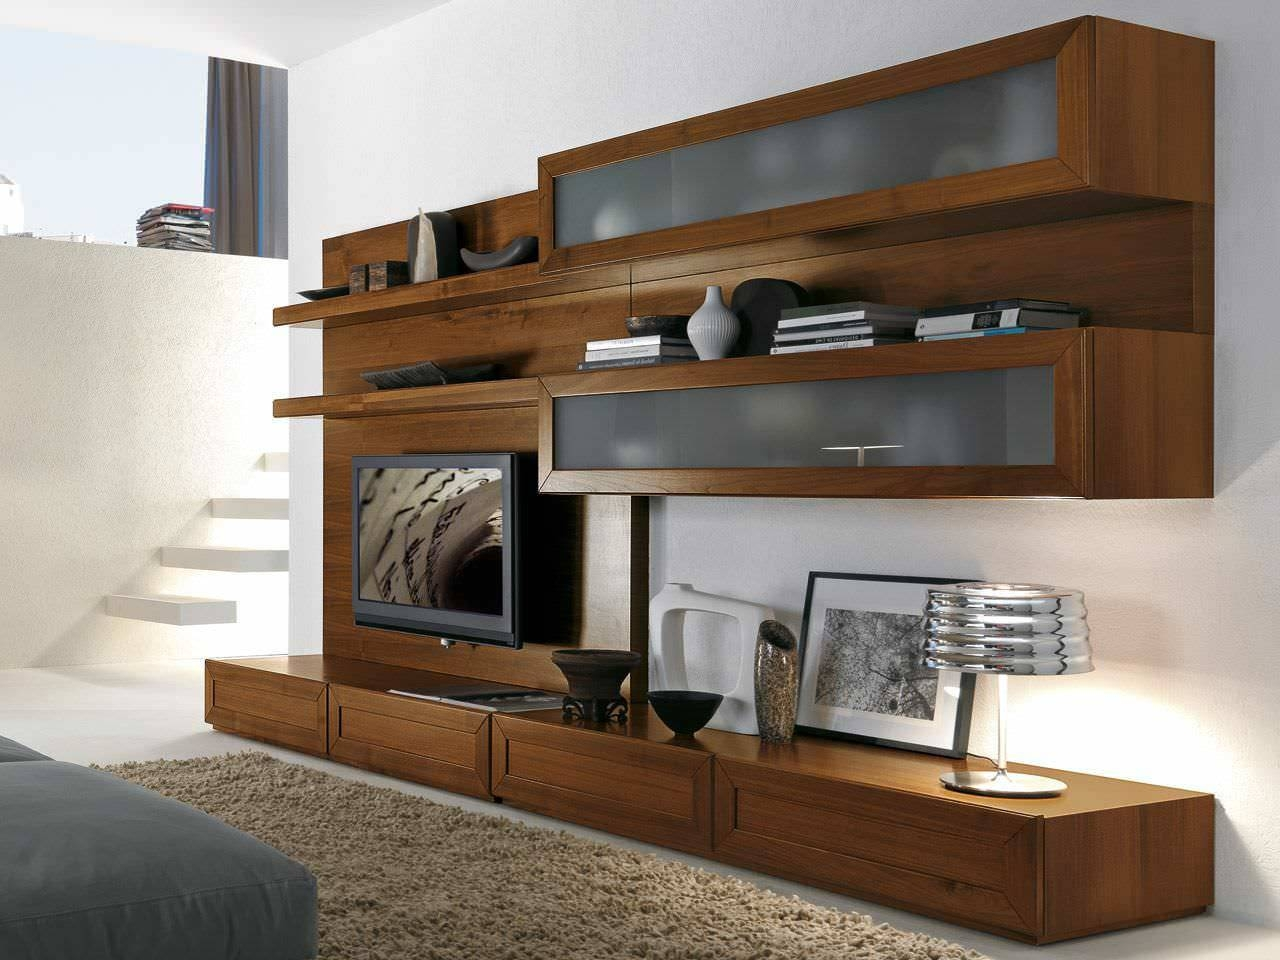 Tv Wall Units Cabinets - Wall Units Design Ideas : Electoral7 throughout Tv Cabinets And Wall Units (Image 10 of 15)